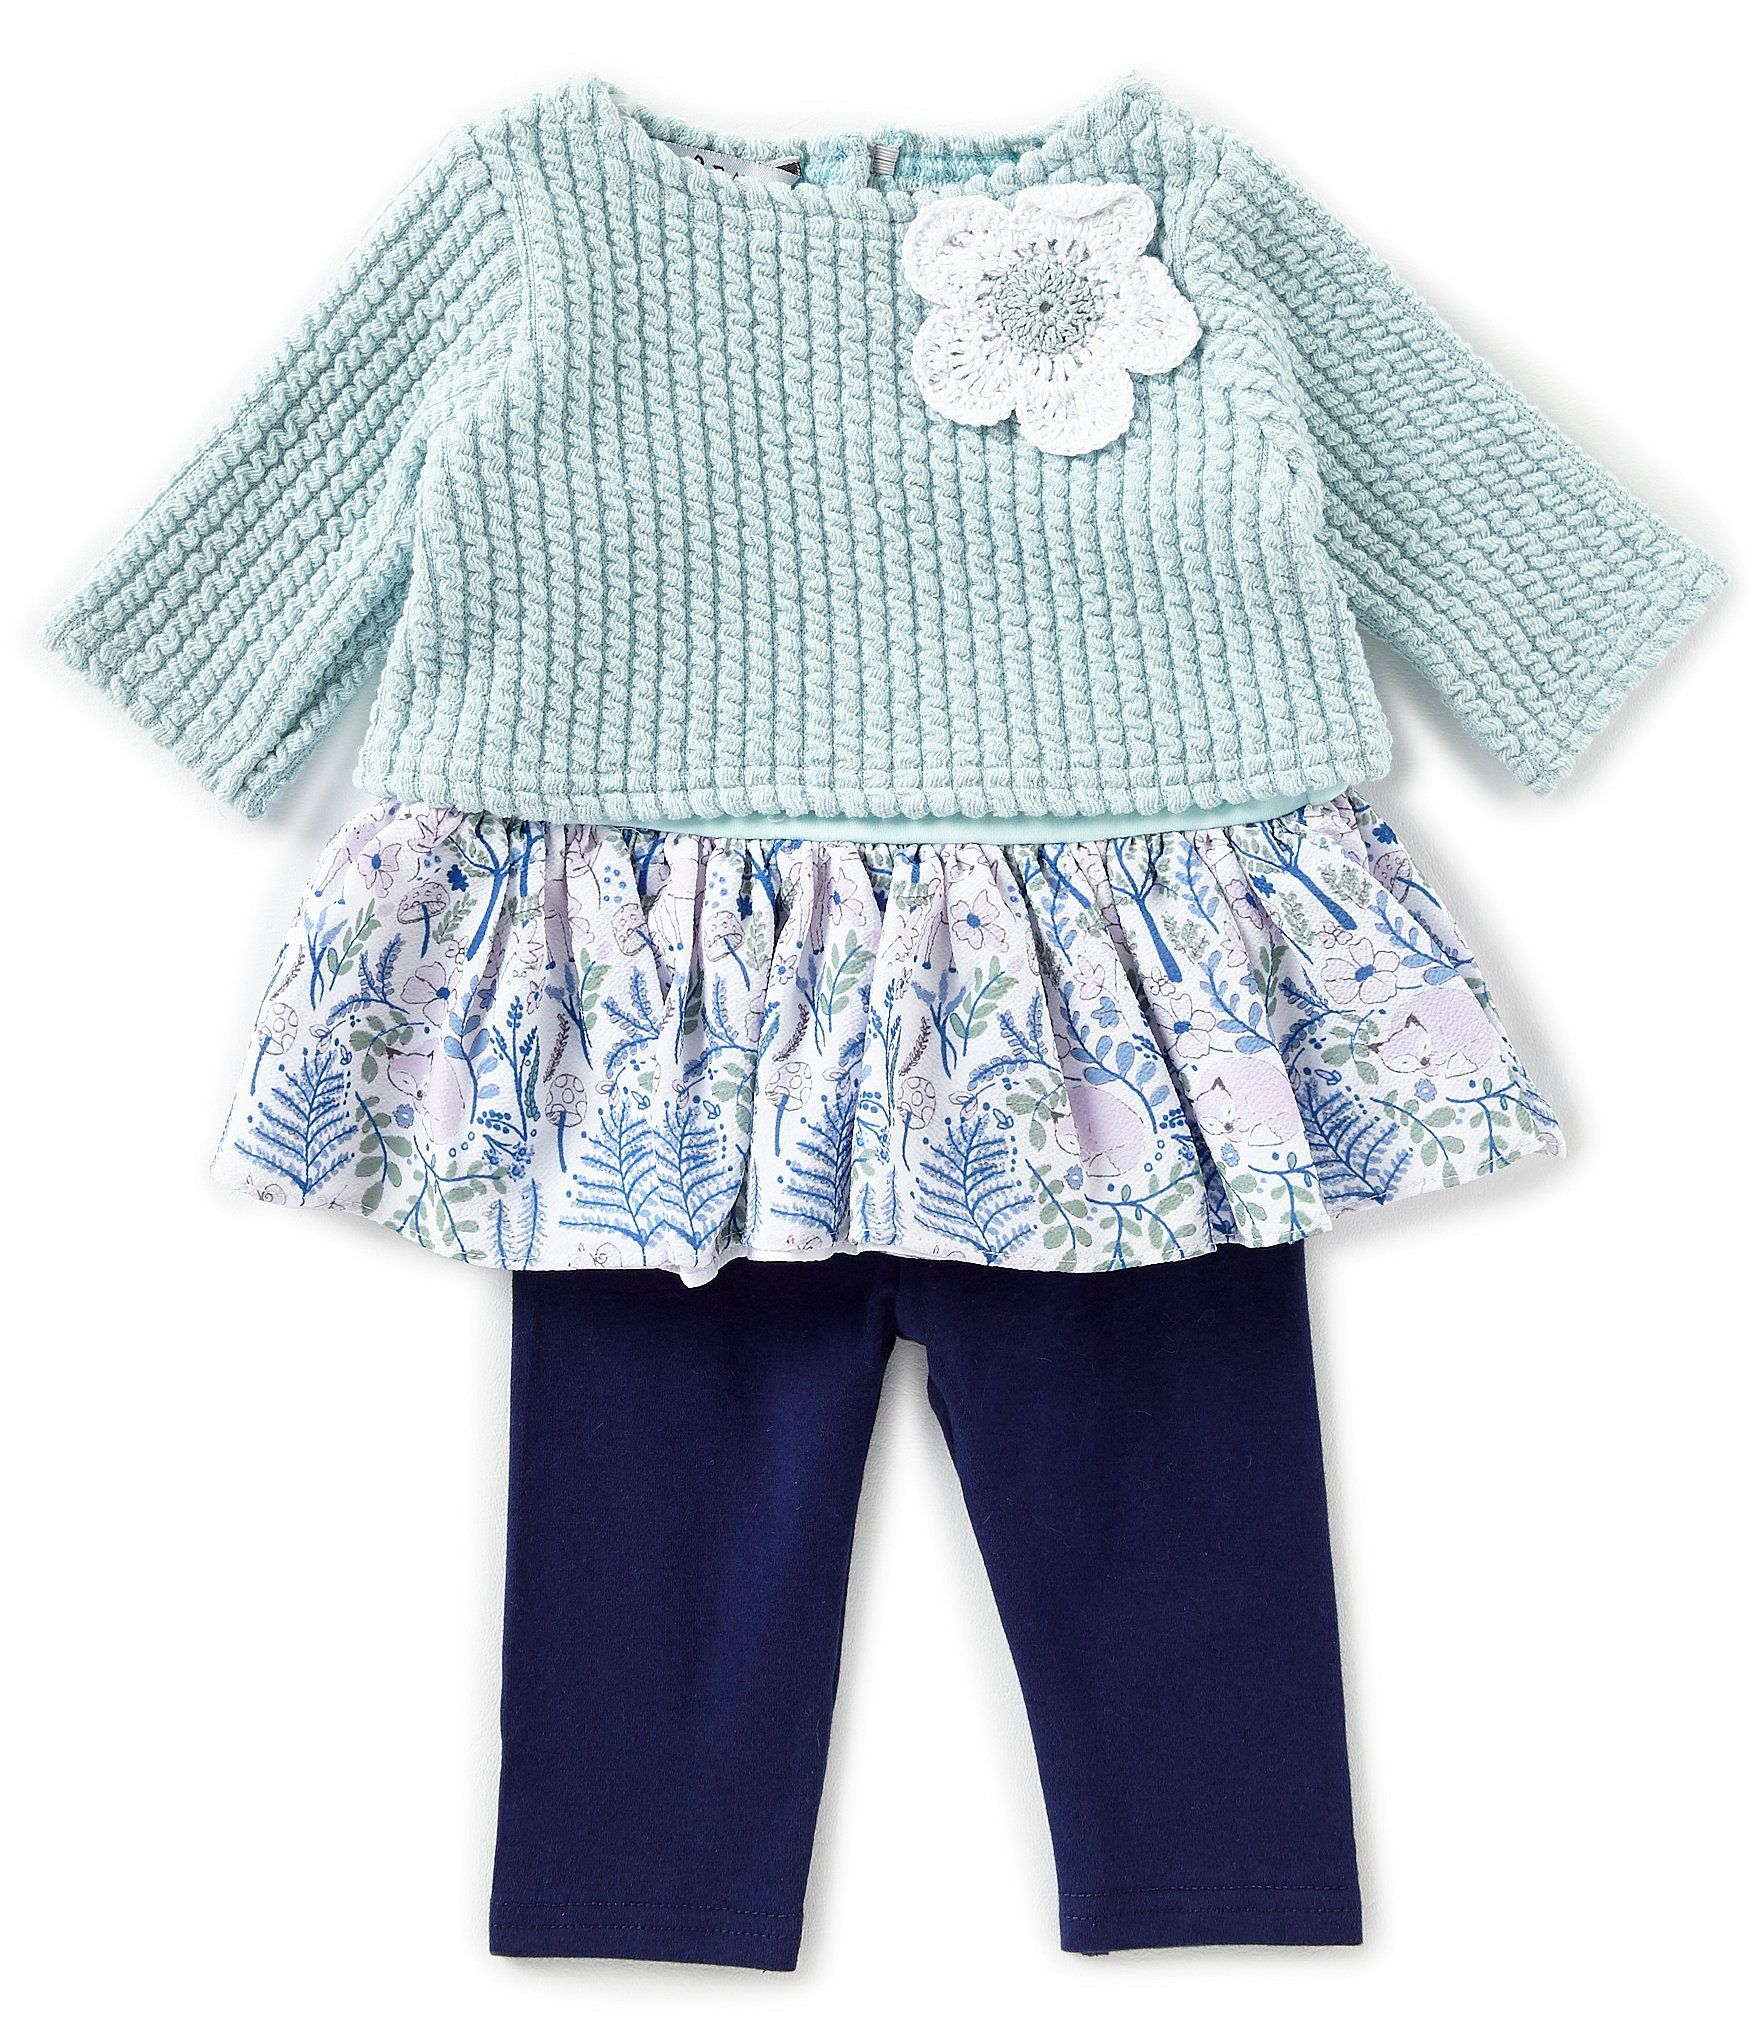 Photo of Pippa & Julie Baby Girls Newborn-9 Months Knit/Floral-Printed Dress & Solid Capri Leggings Set | Dillard's